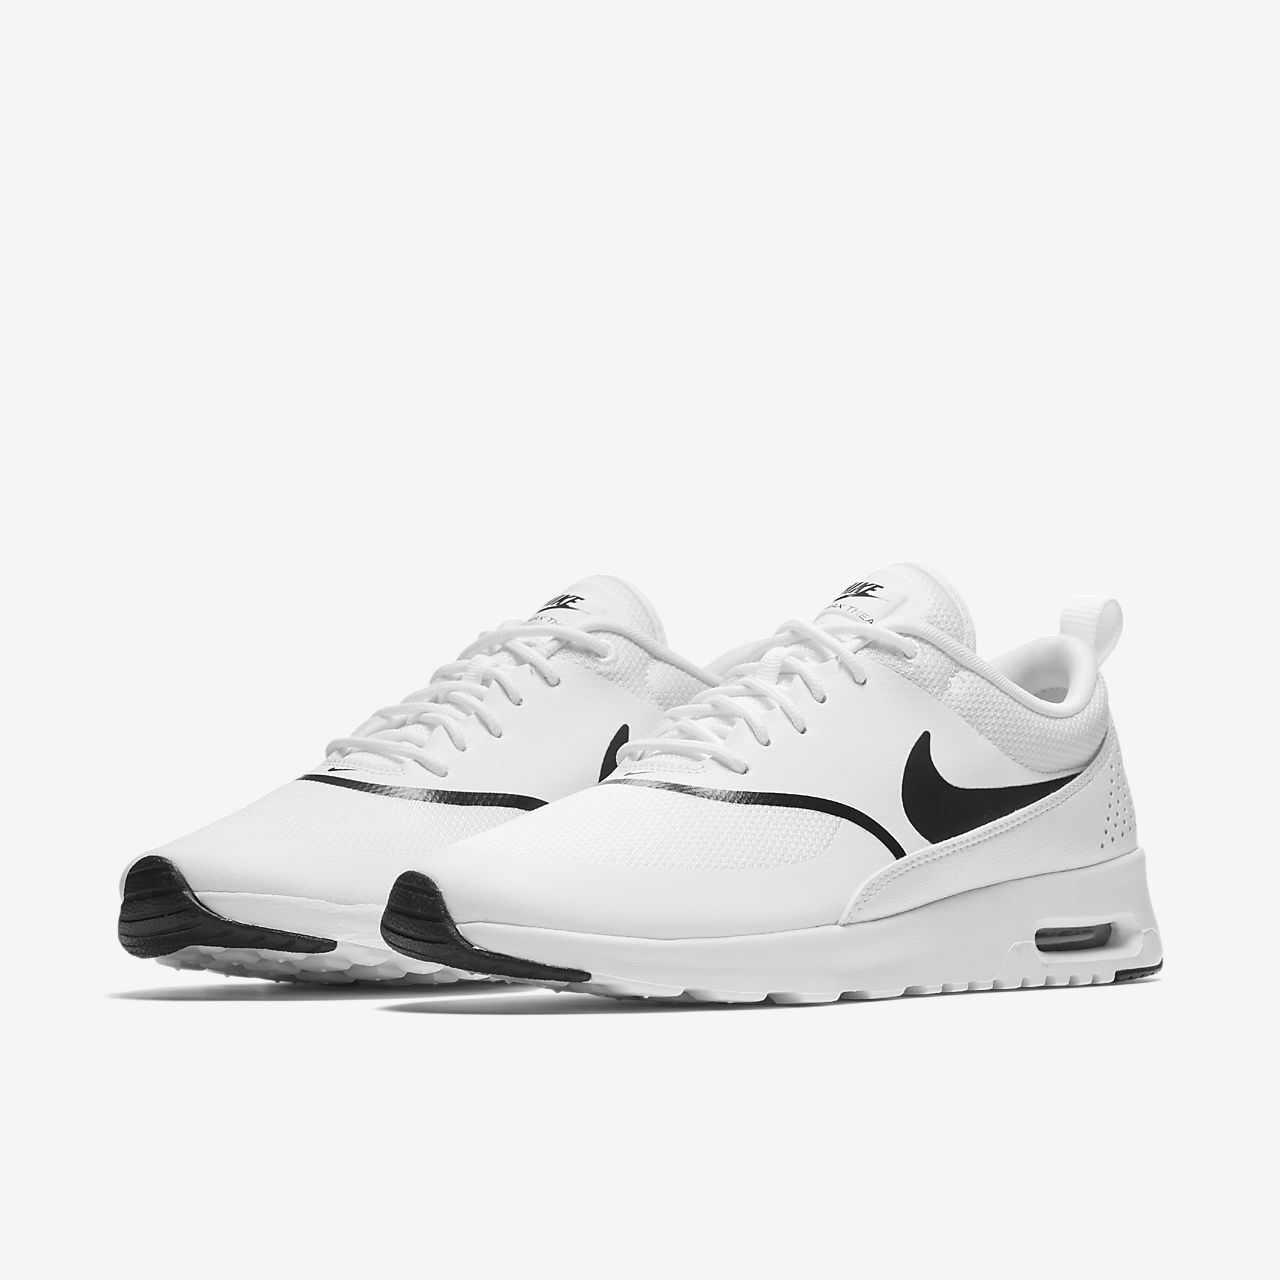 d780c7920cb72 Low Resolution Nike Air Max Thea Women s Shoe Nike Air Max Thea Women s Shoe